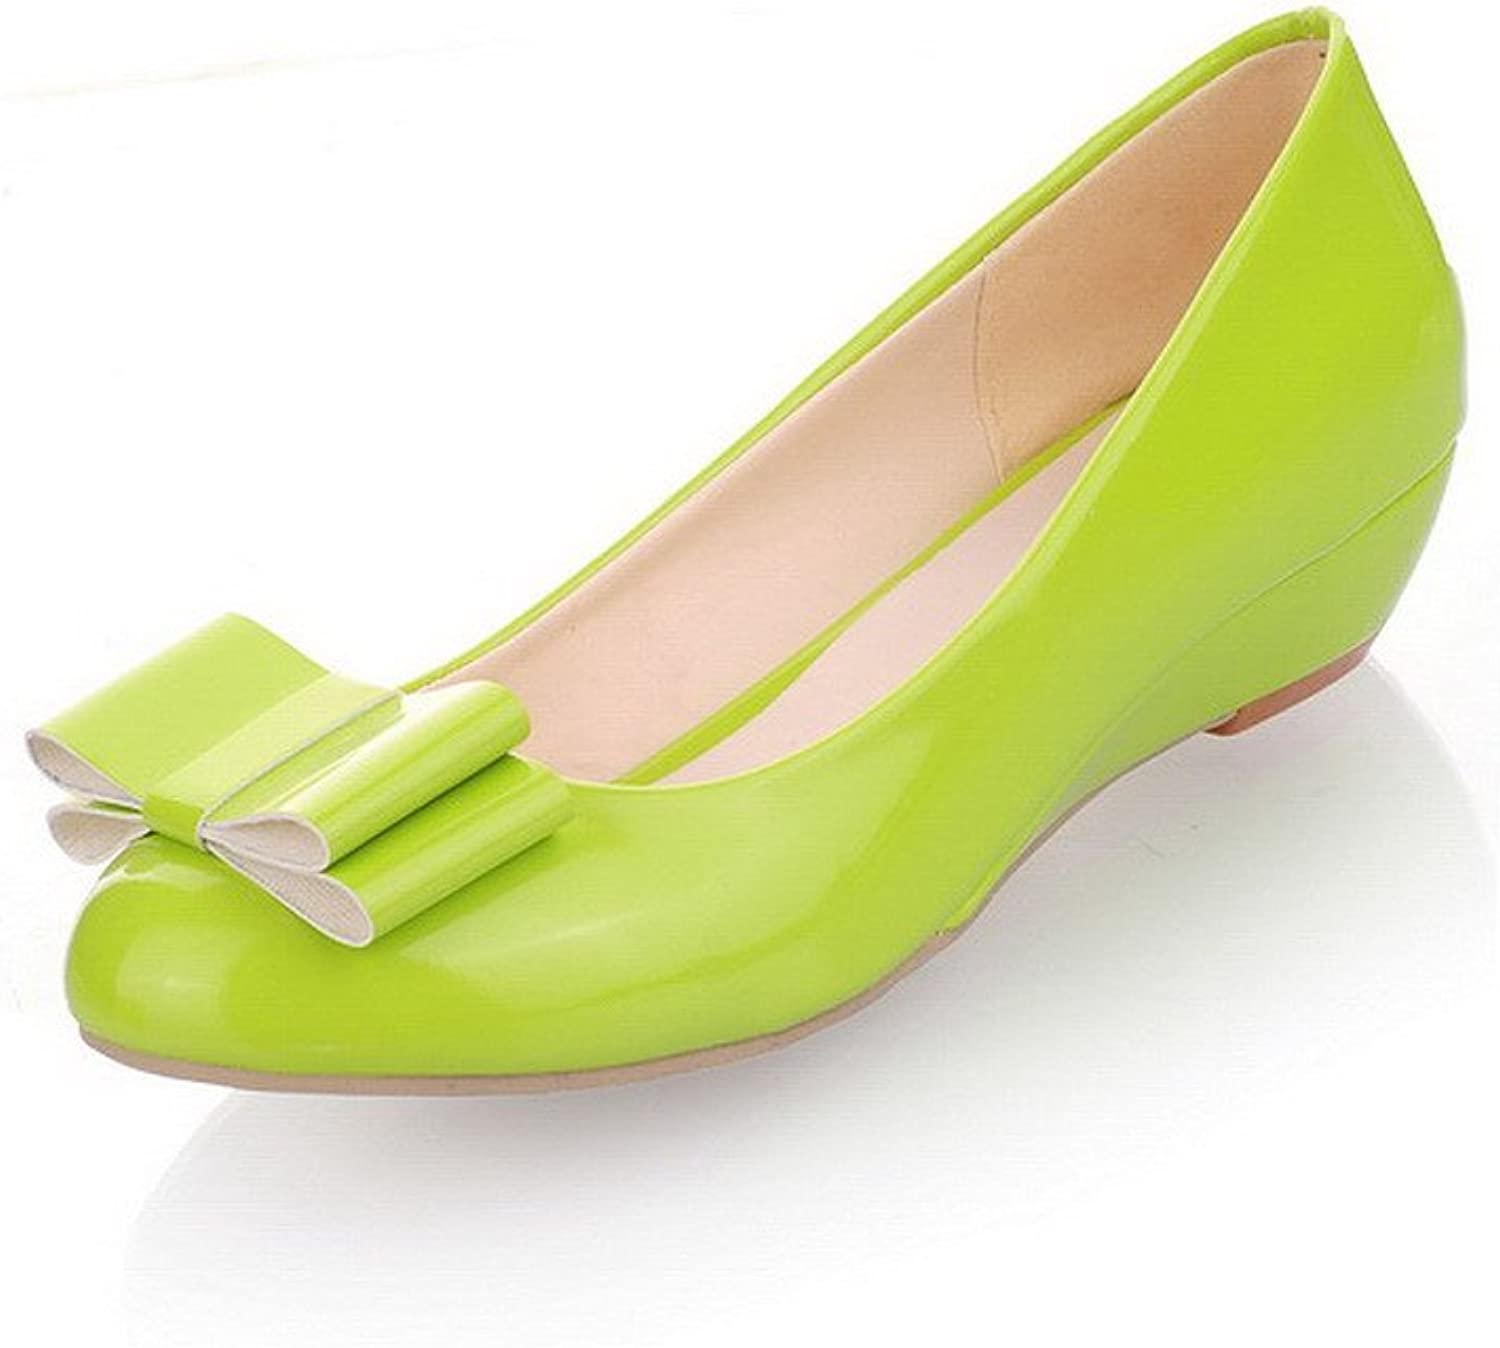 WeiPoot Womens Closed Round Toe Low Heel PU Soft Material Solid Pumps with Bowknot, Green, 7.5 B(M) US